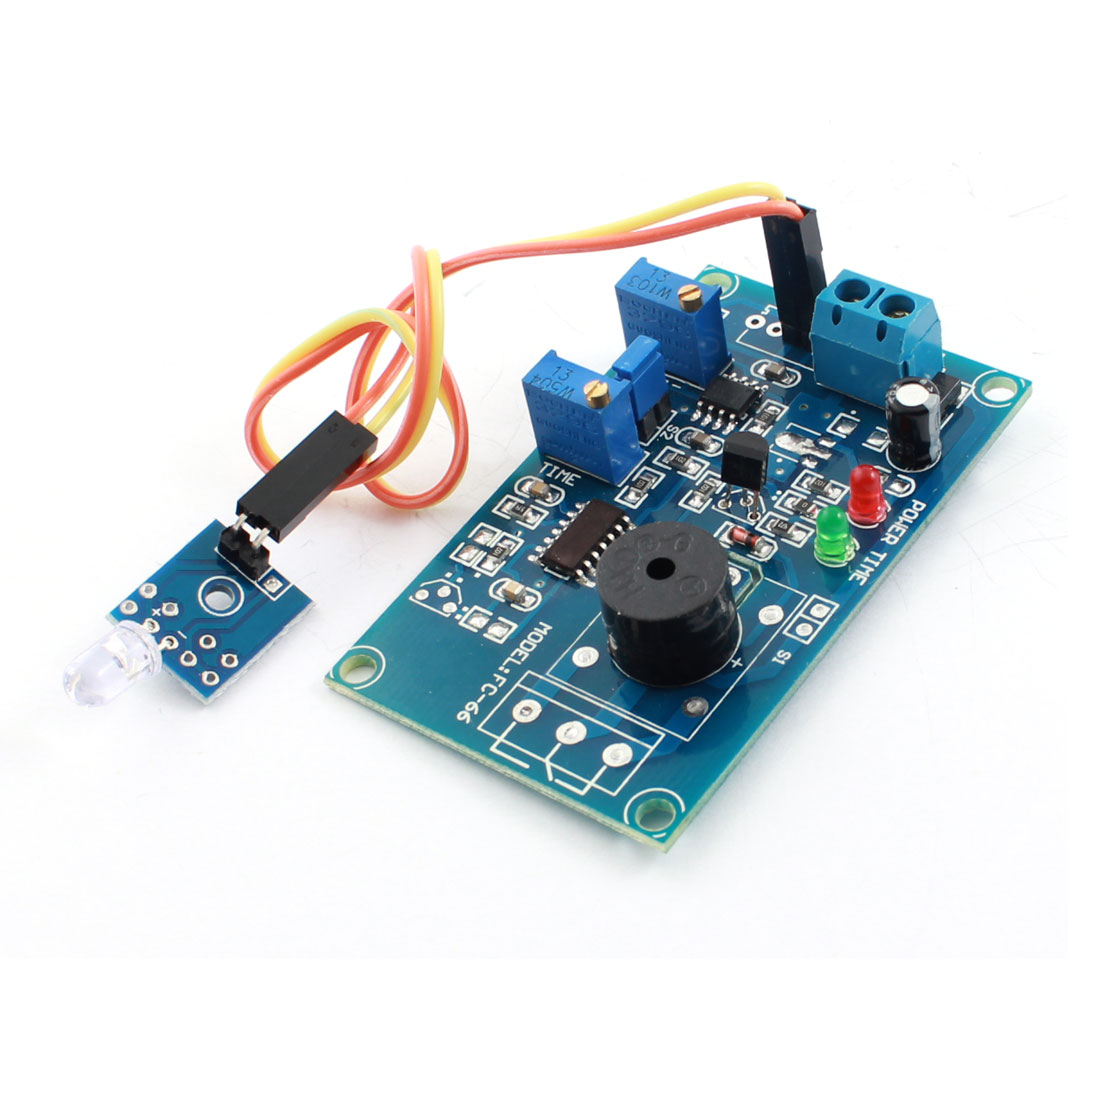 FC-66 DC5V Light Detection Photosensitive Diode Sensor Delay Alarm PCB Circuit Module w Piezo Buzzer